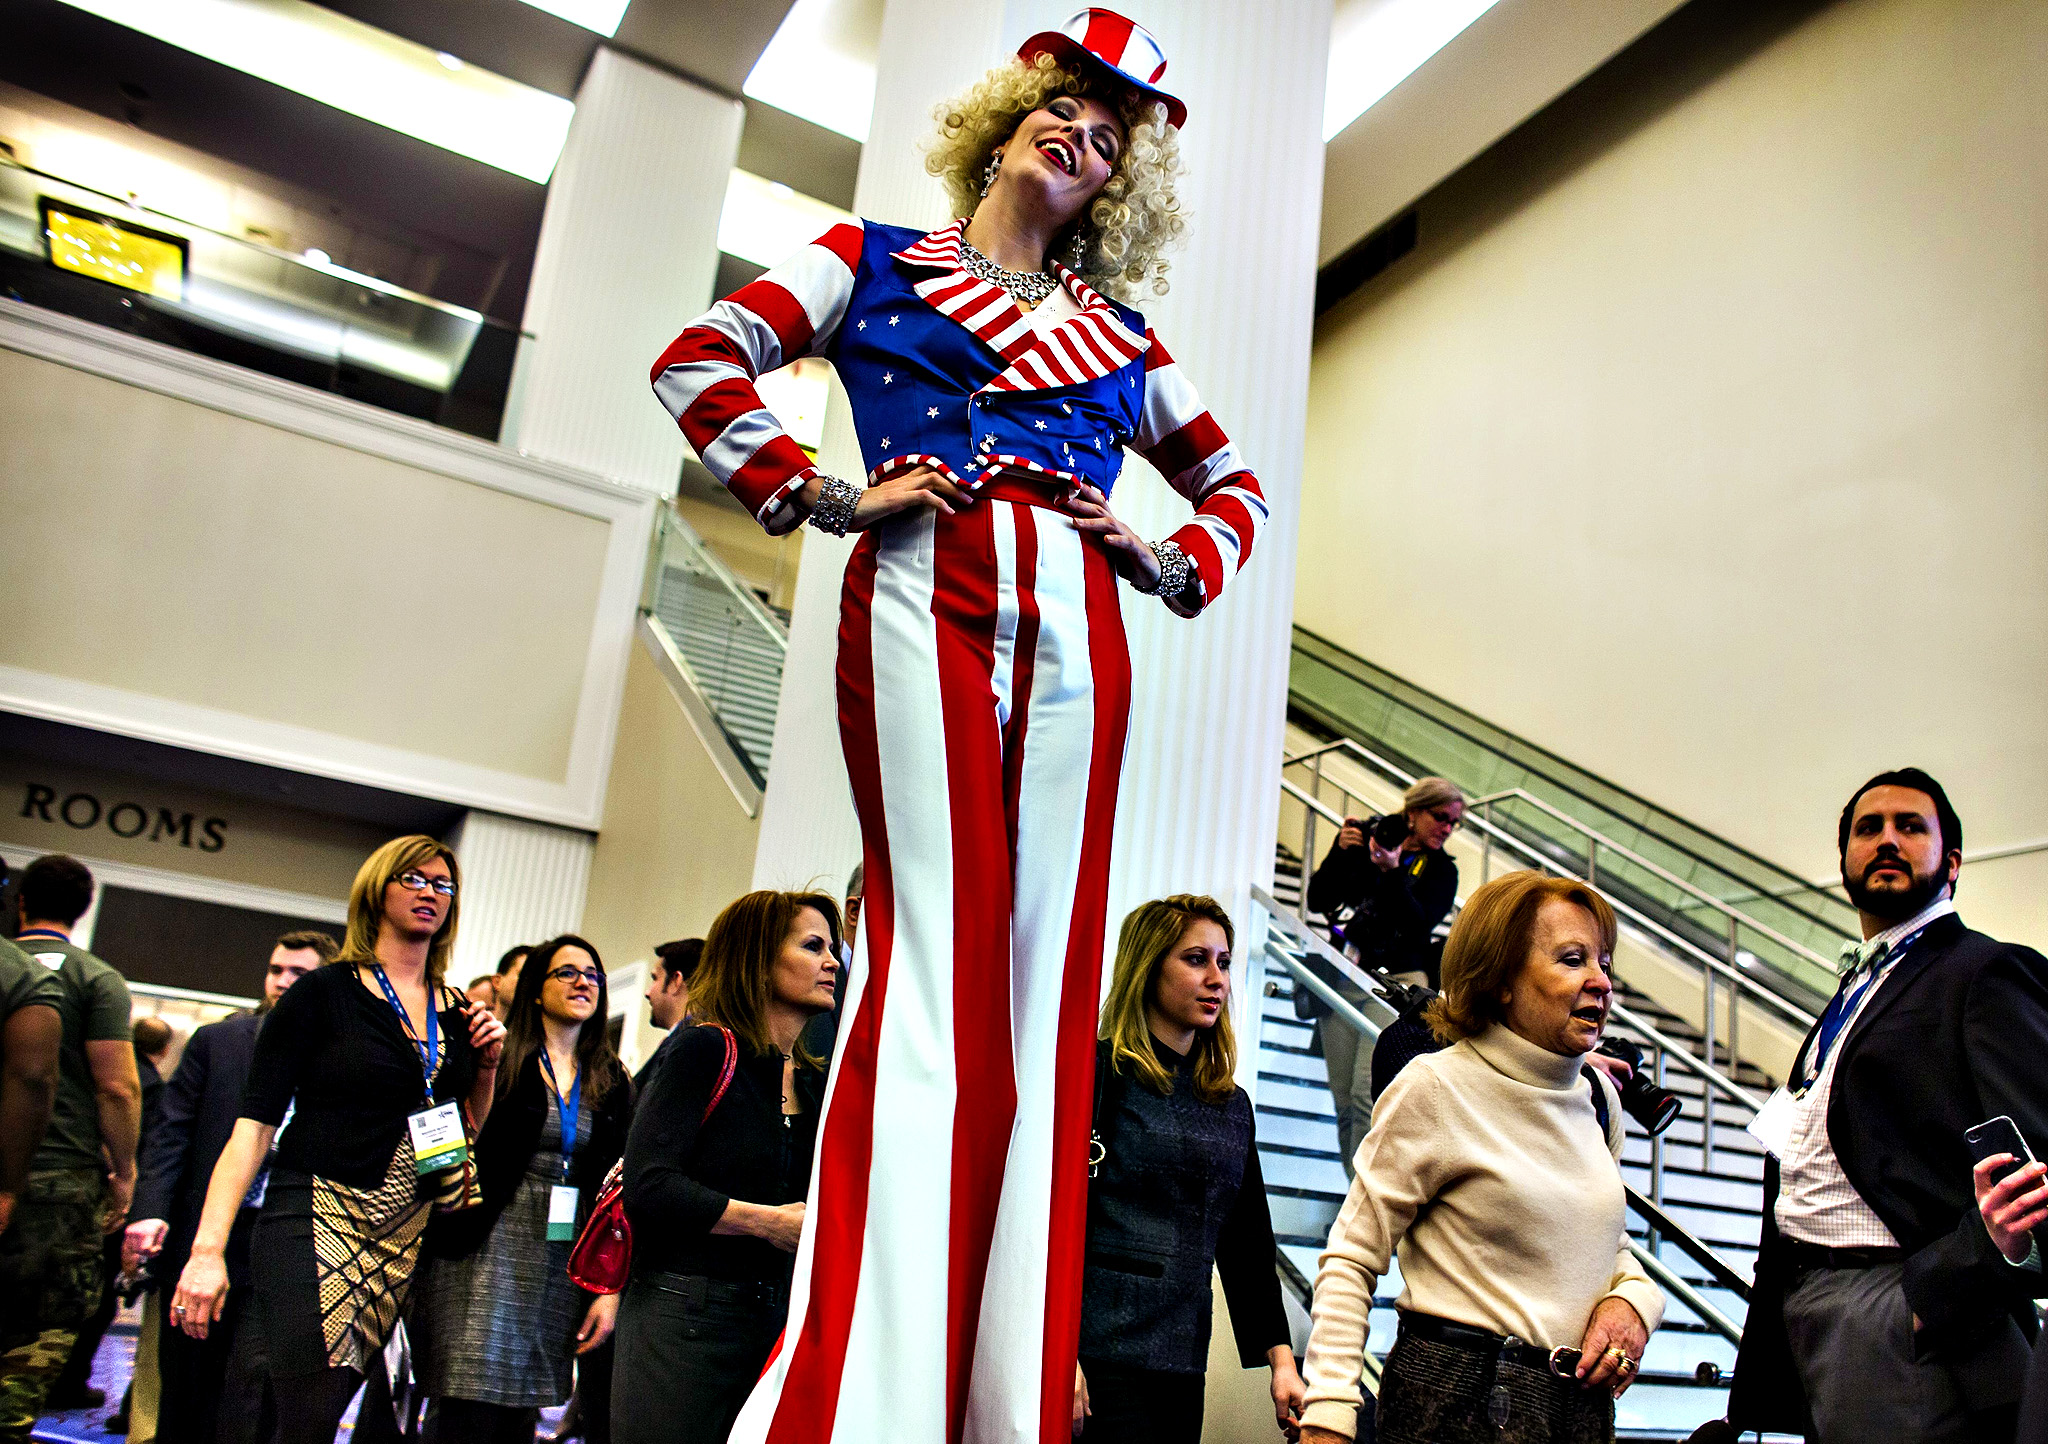 A performer greets arrivals to the 41st Annual Conservative Political Action Conference (CPAC) at the Gaylord National Resort & Convention Center in National Harbor, Maryland, USA, 06 March 2014.